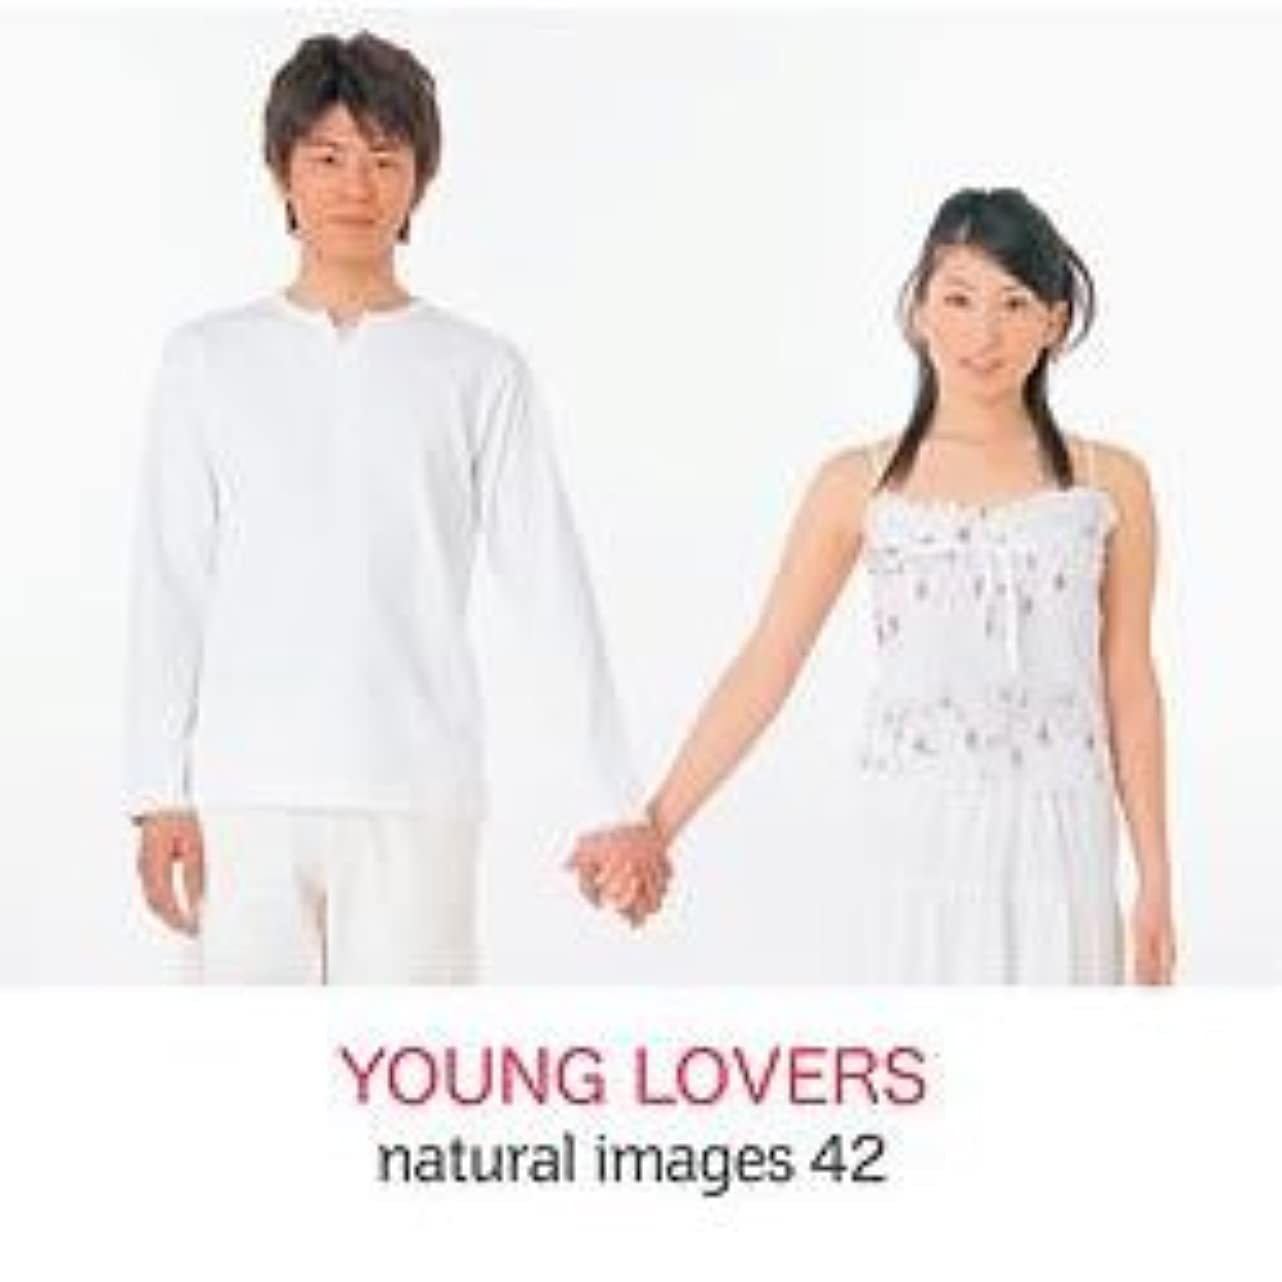 natural images Vol.42 YOUNG LOVERS